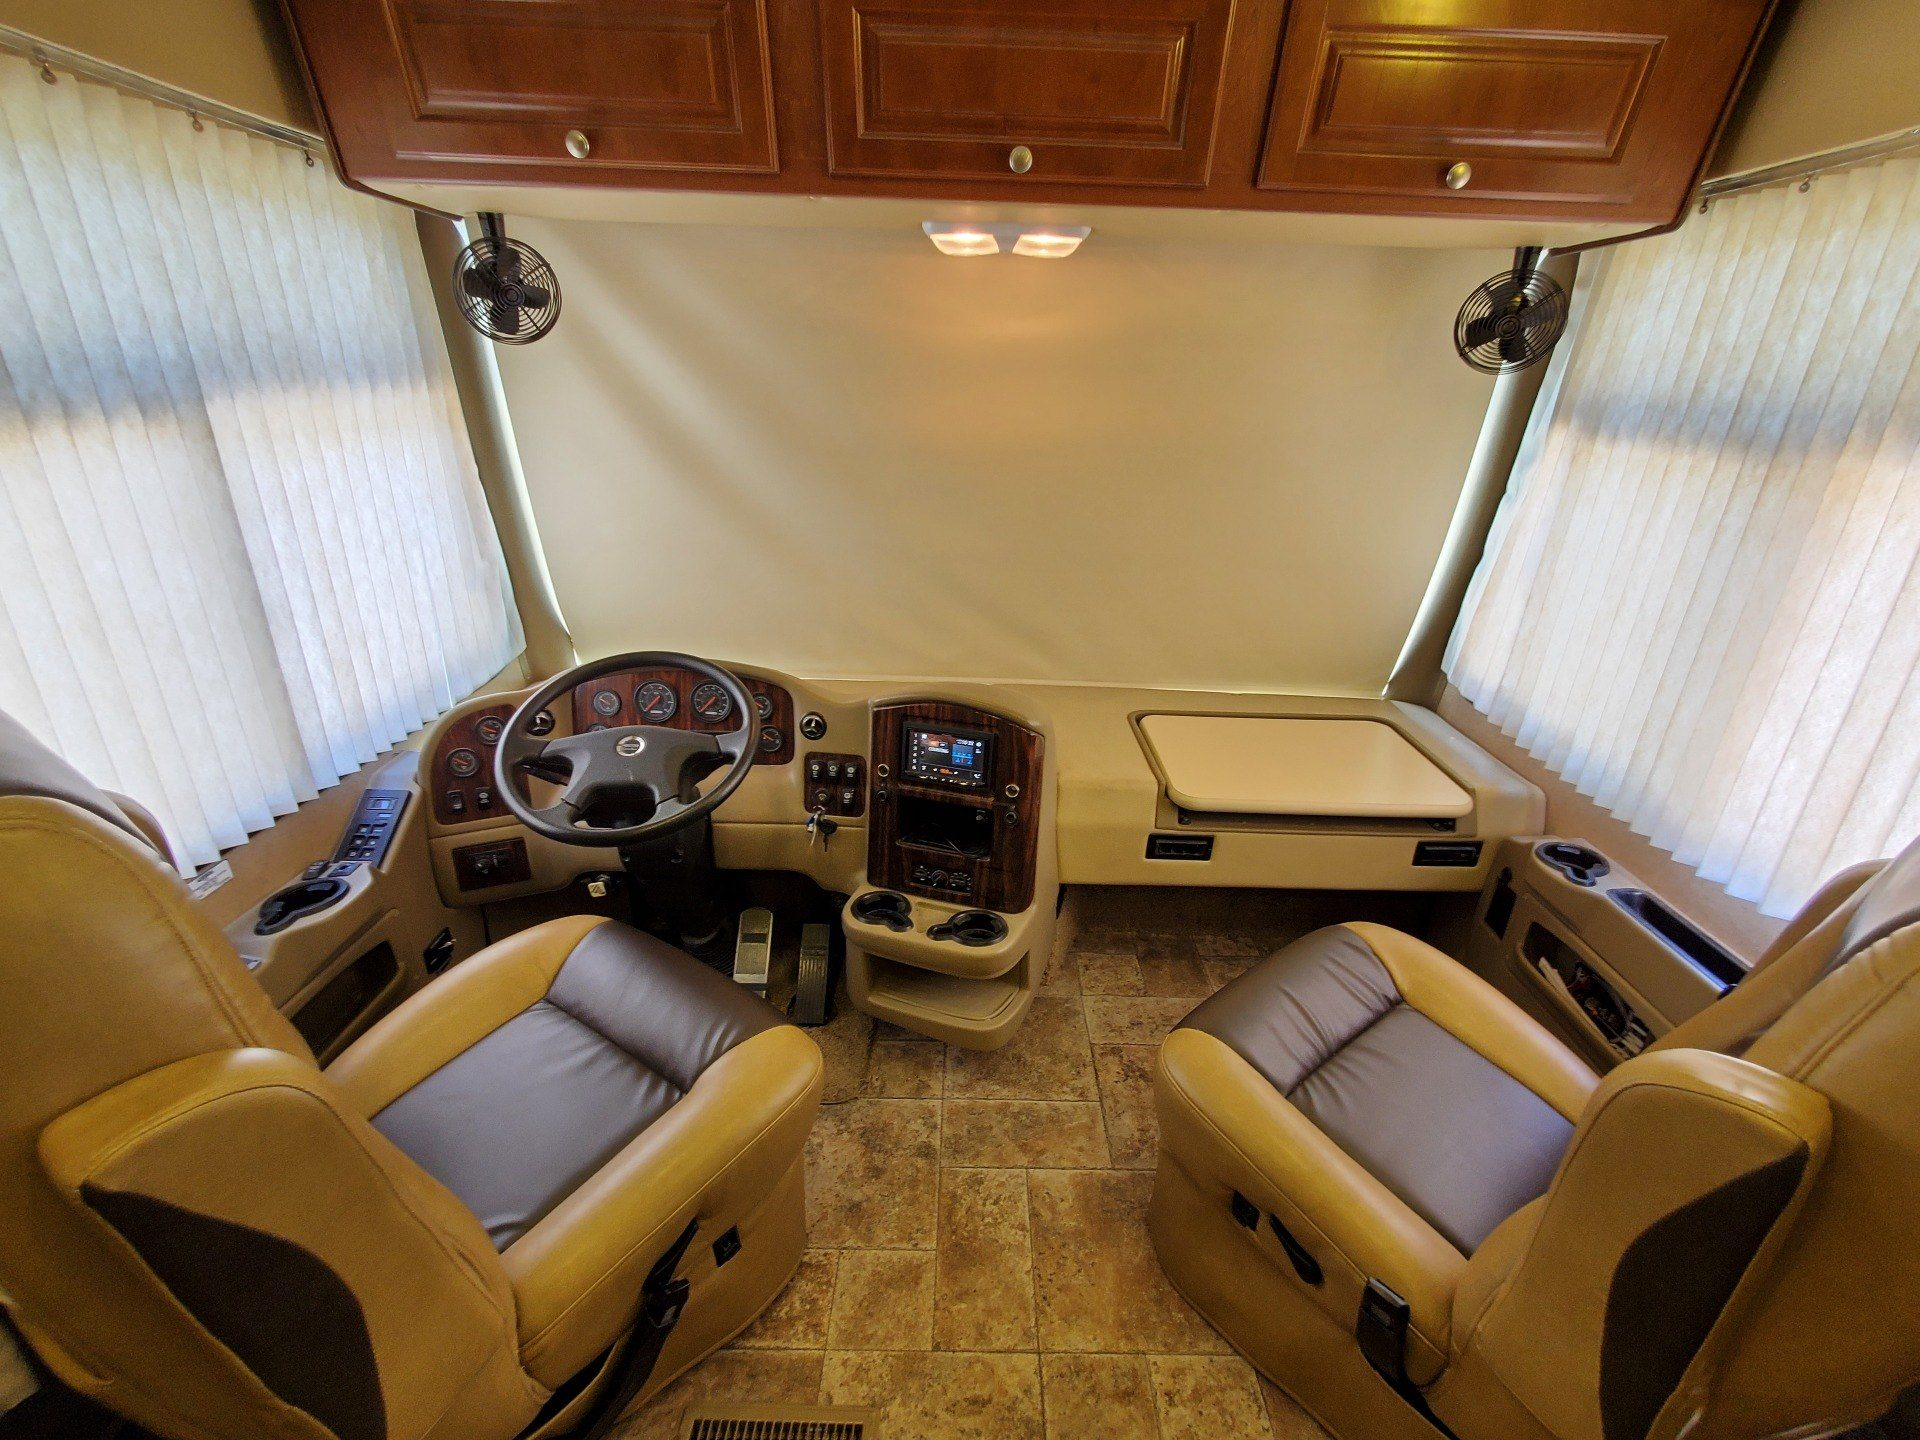 2014 Thor Palazzo 36.1 in Wolfforth, Texas - Photo 4